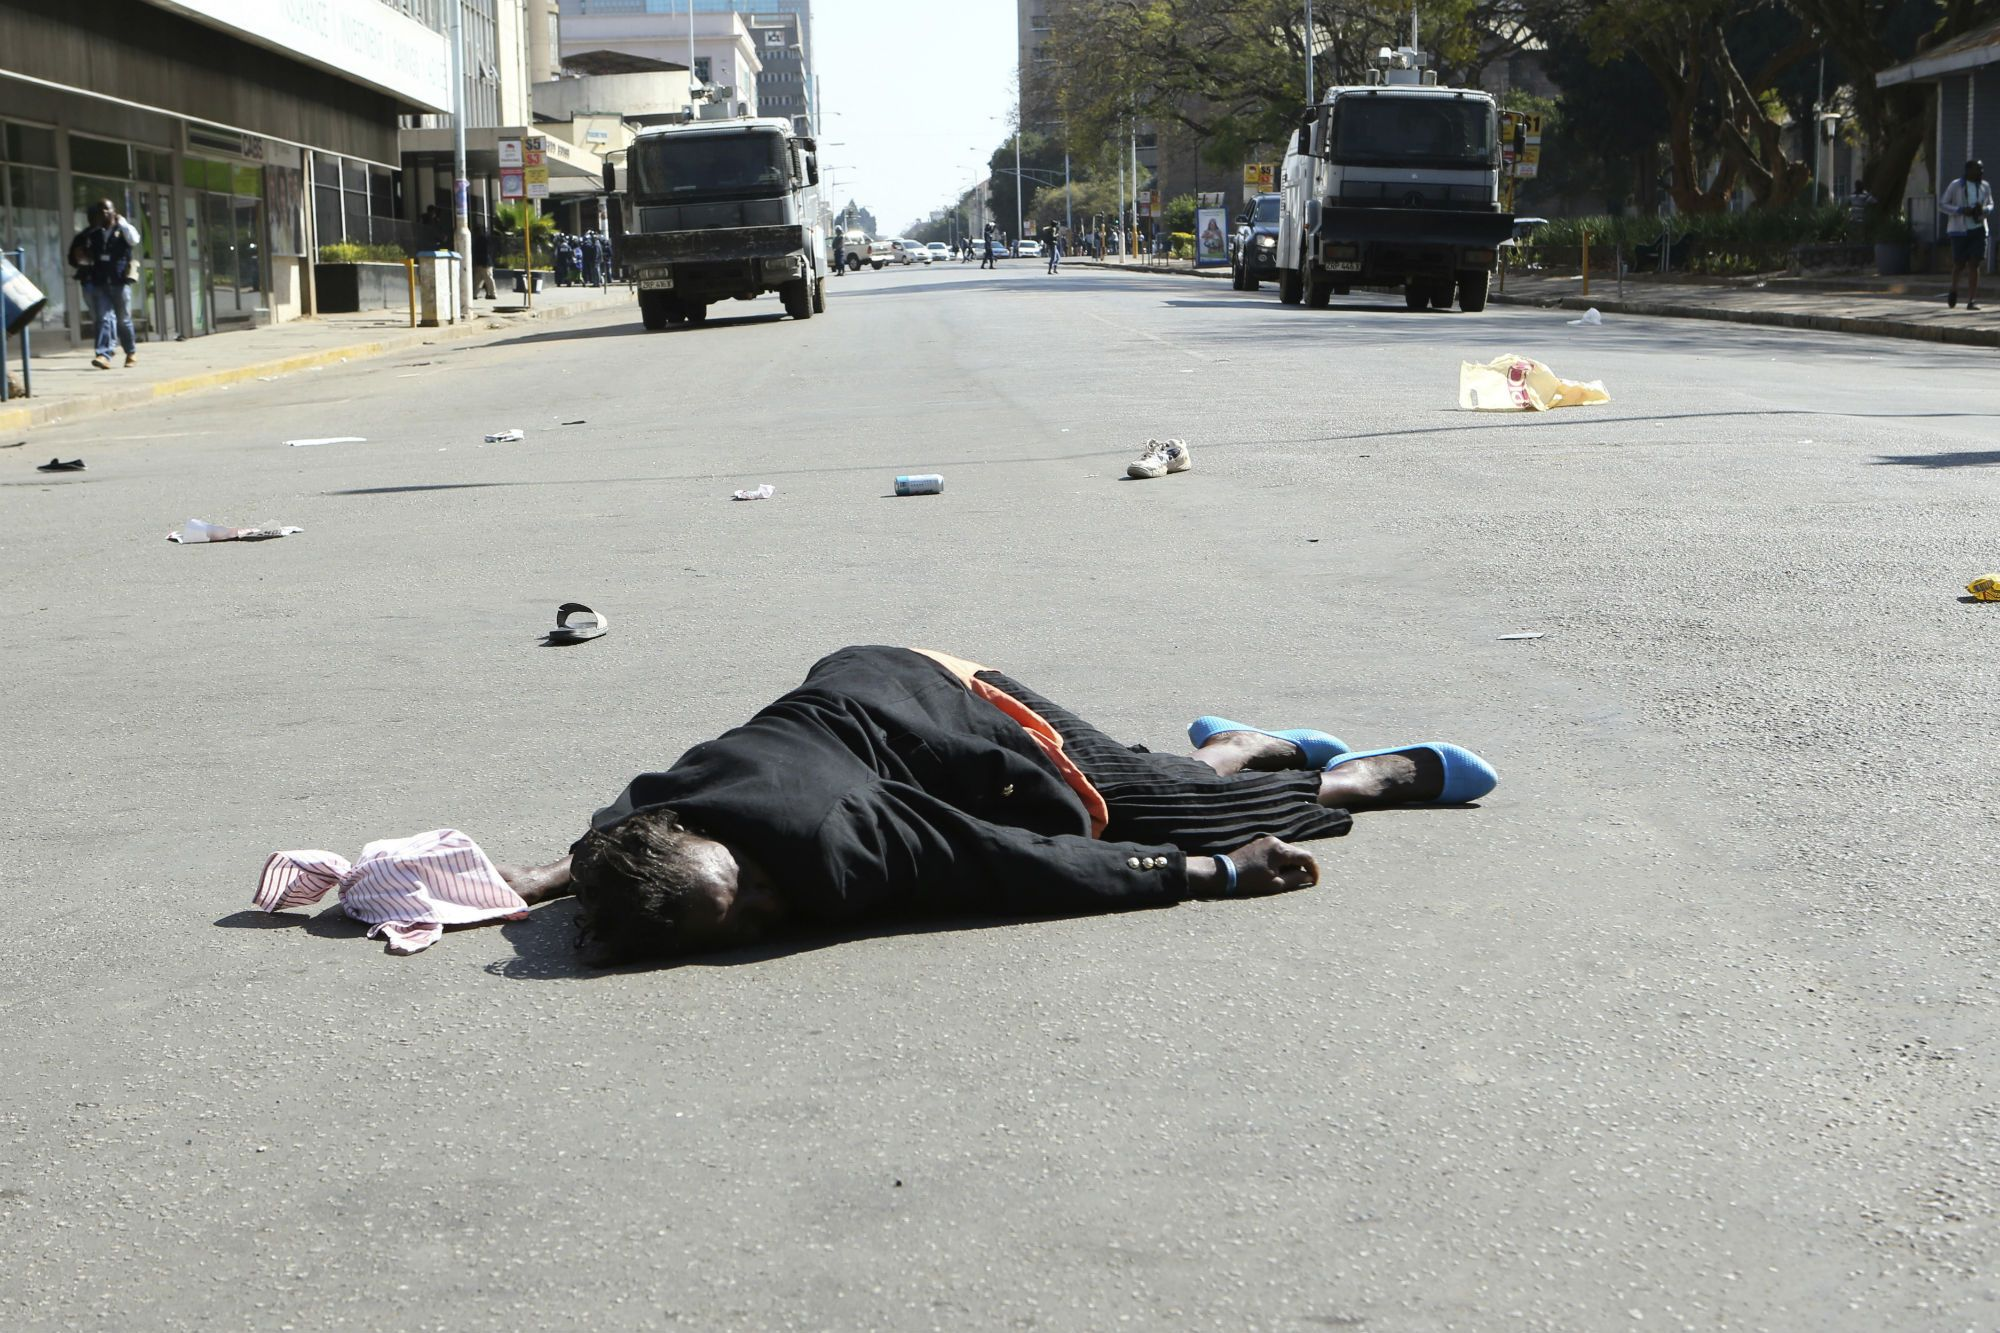 A woman lies injured on the tarmac after been injured during protests in Harare.